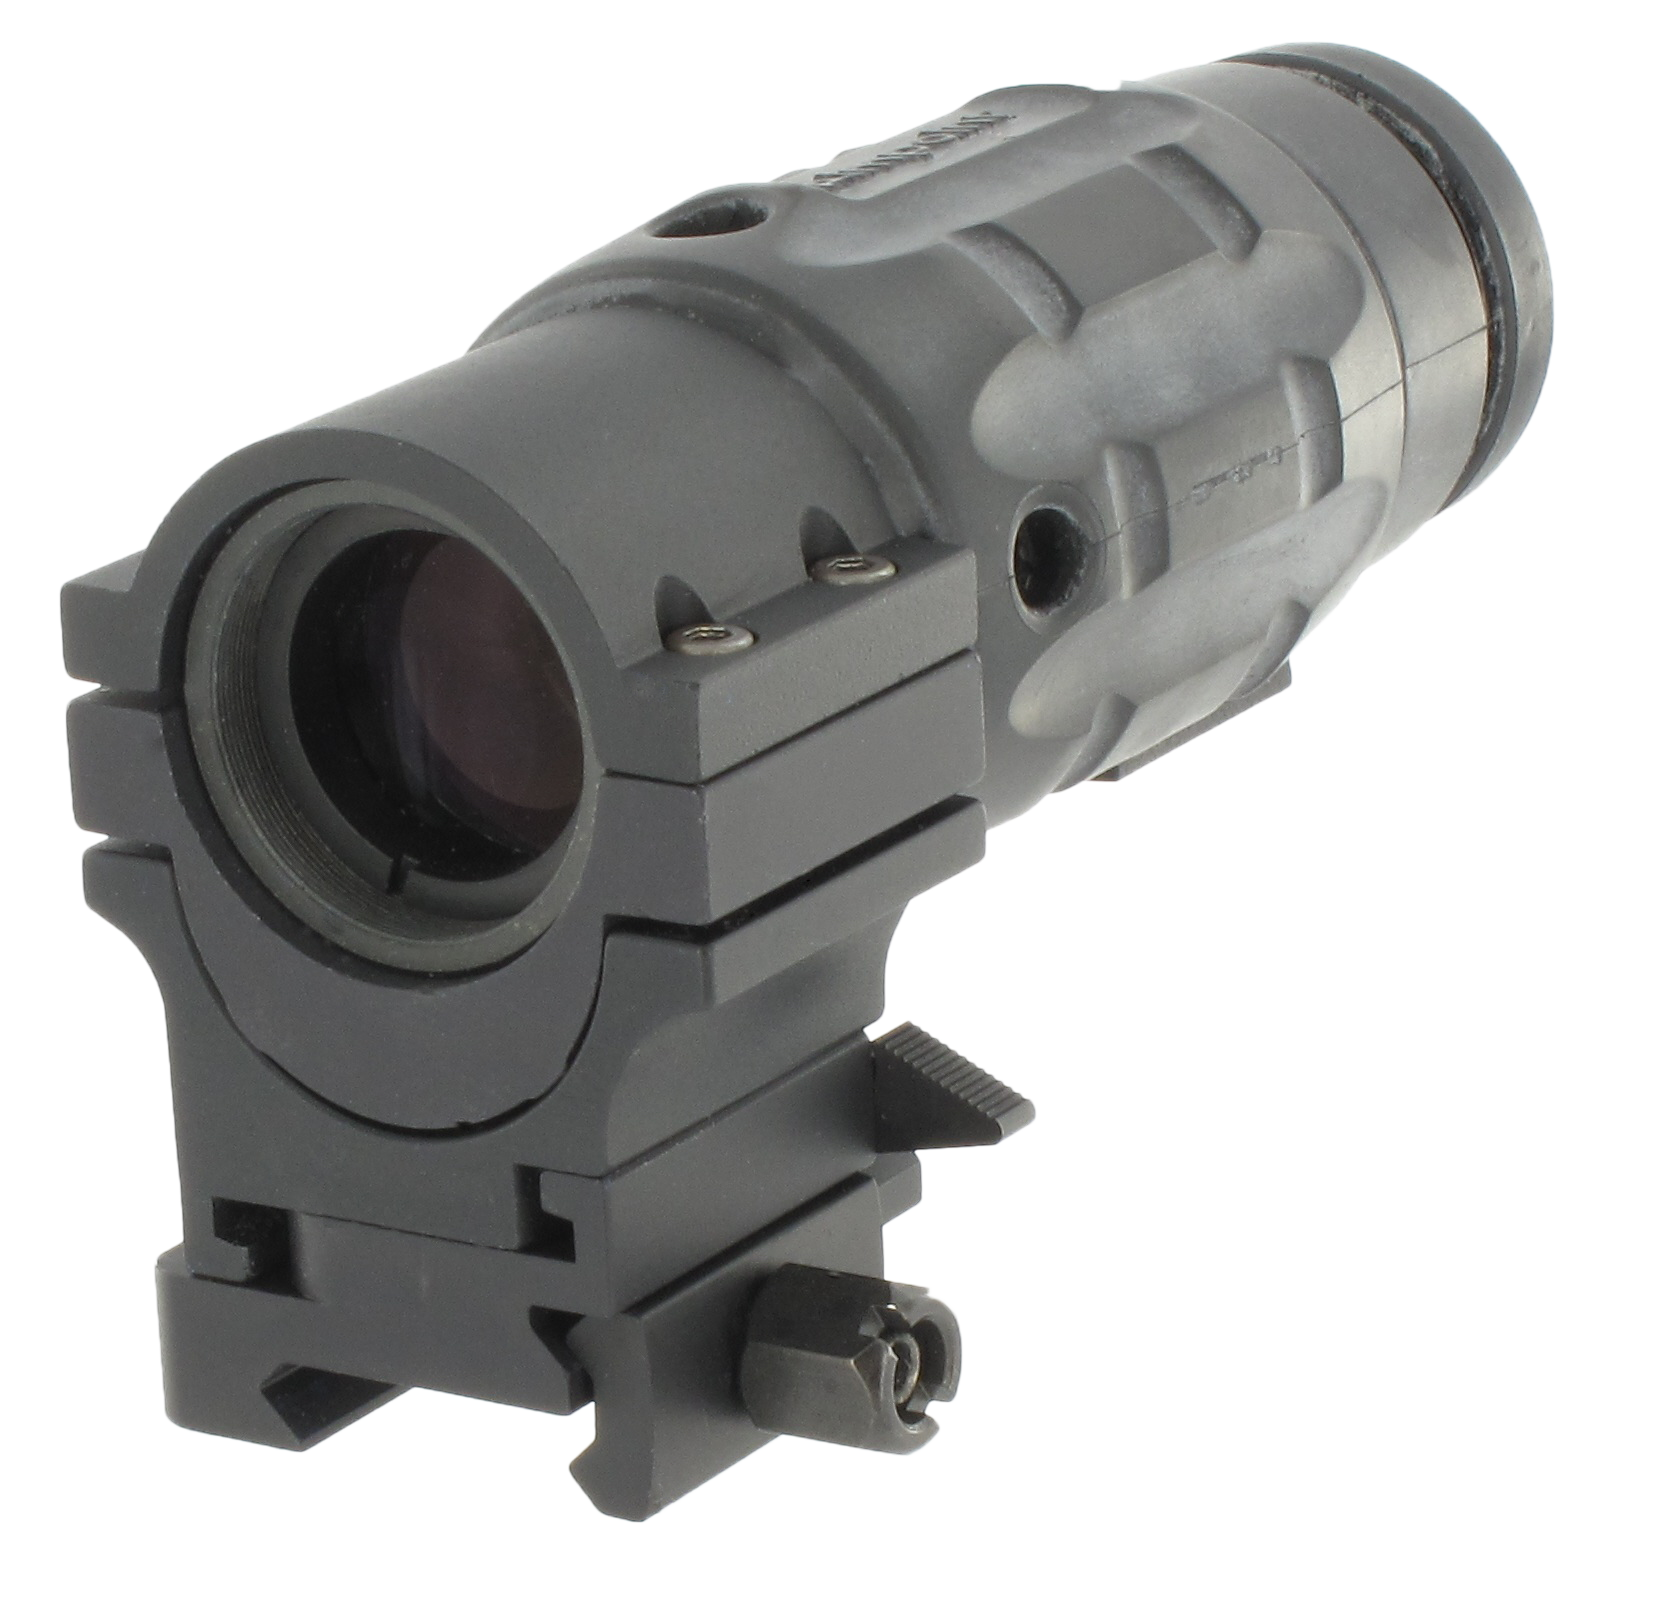 Aimpoint 3x Magnifier Twistmount (3XMAG-C)